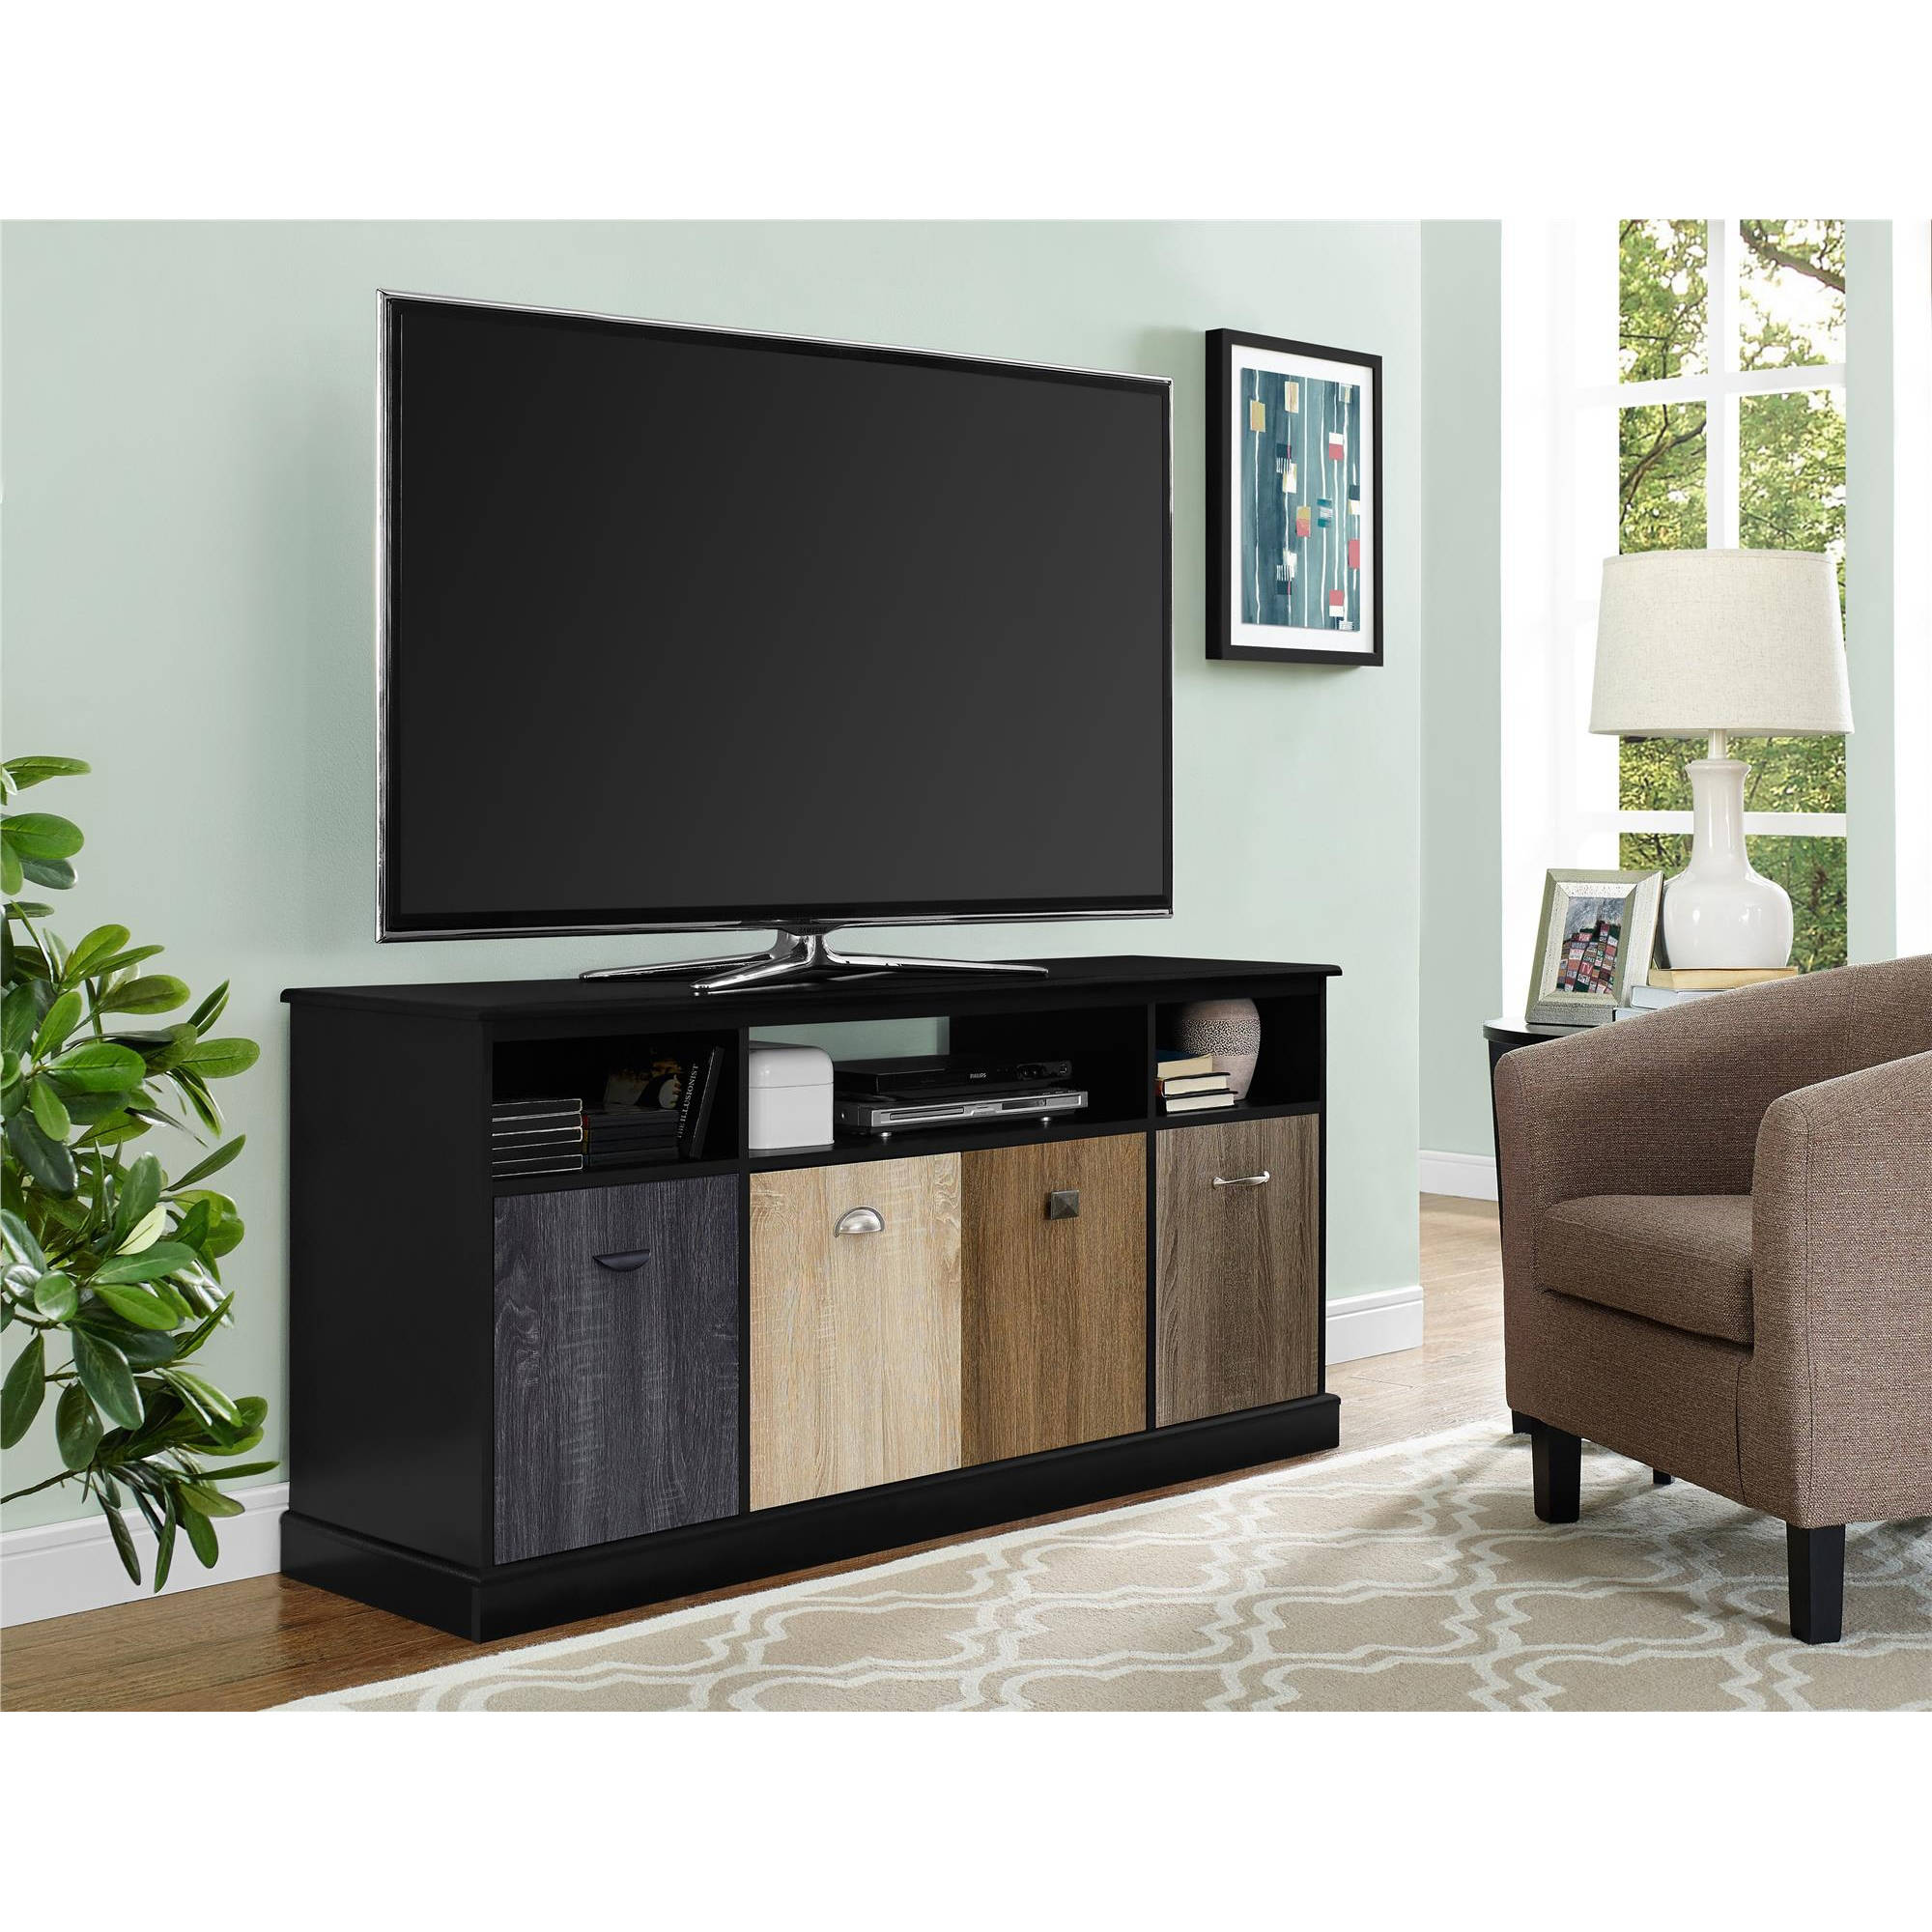 "Altra Mercer 60"" TV Console with Multicolored Door Fronts, Multiple Colors"